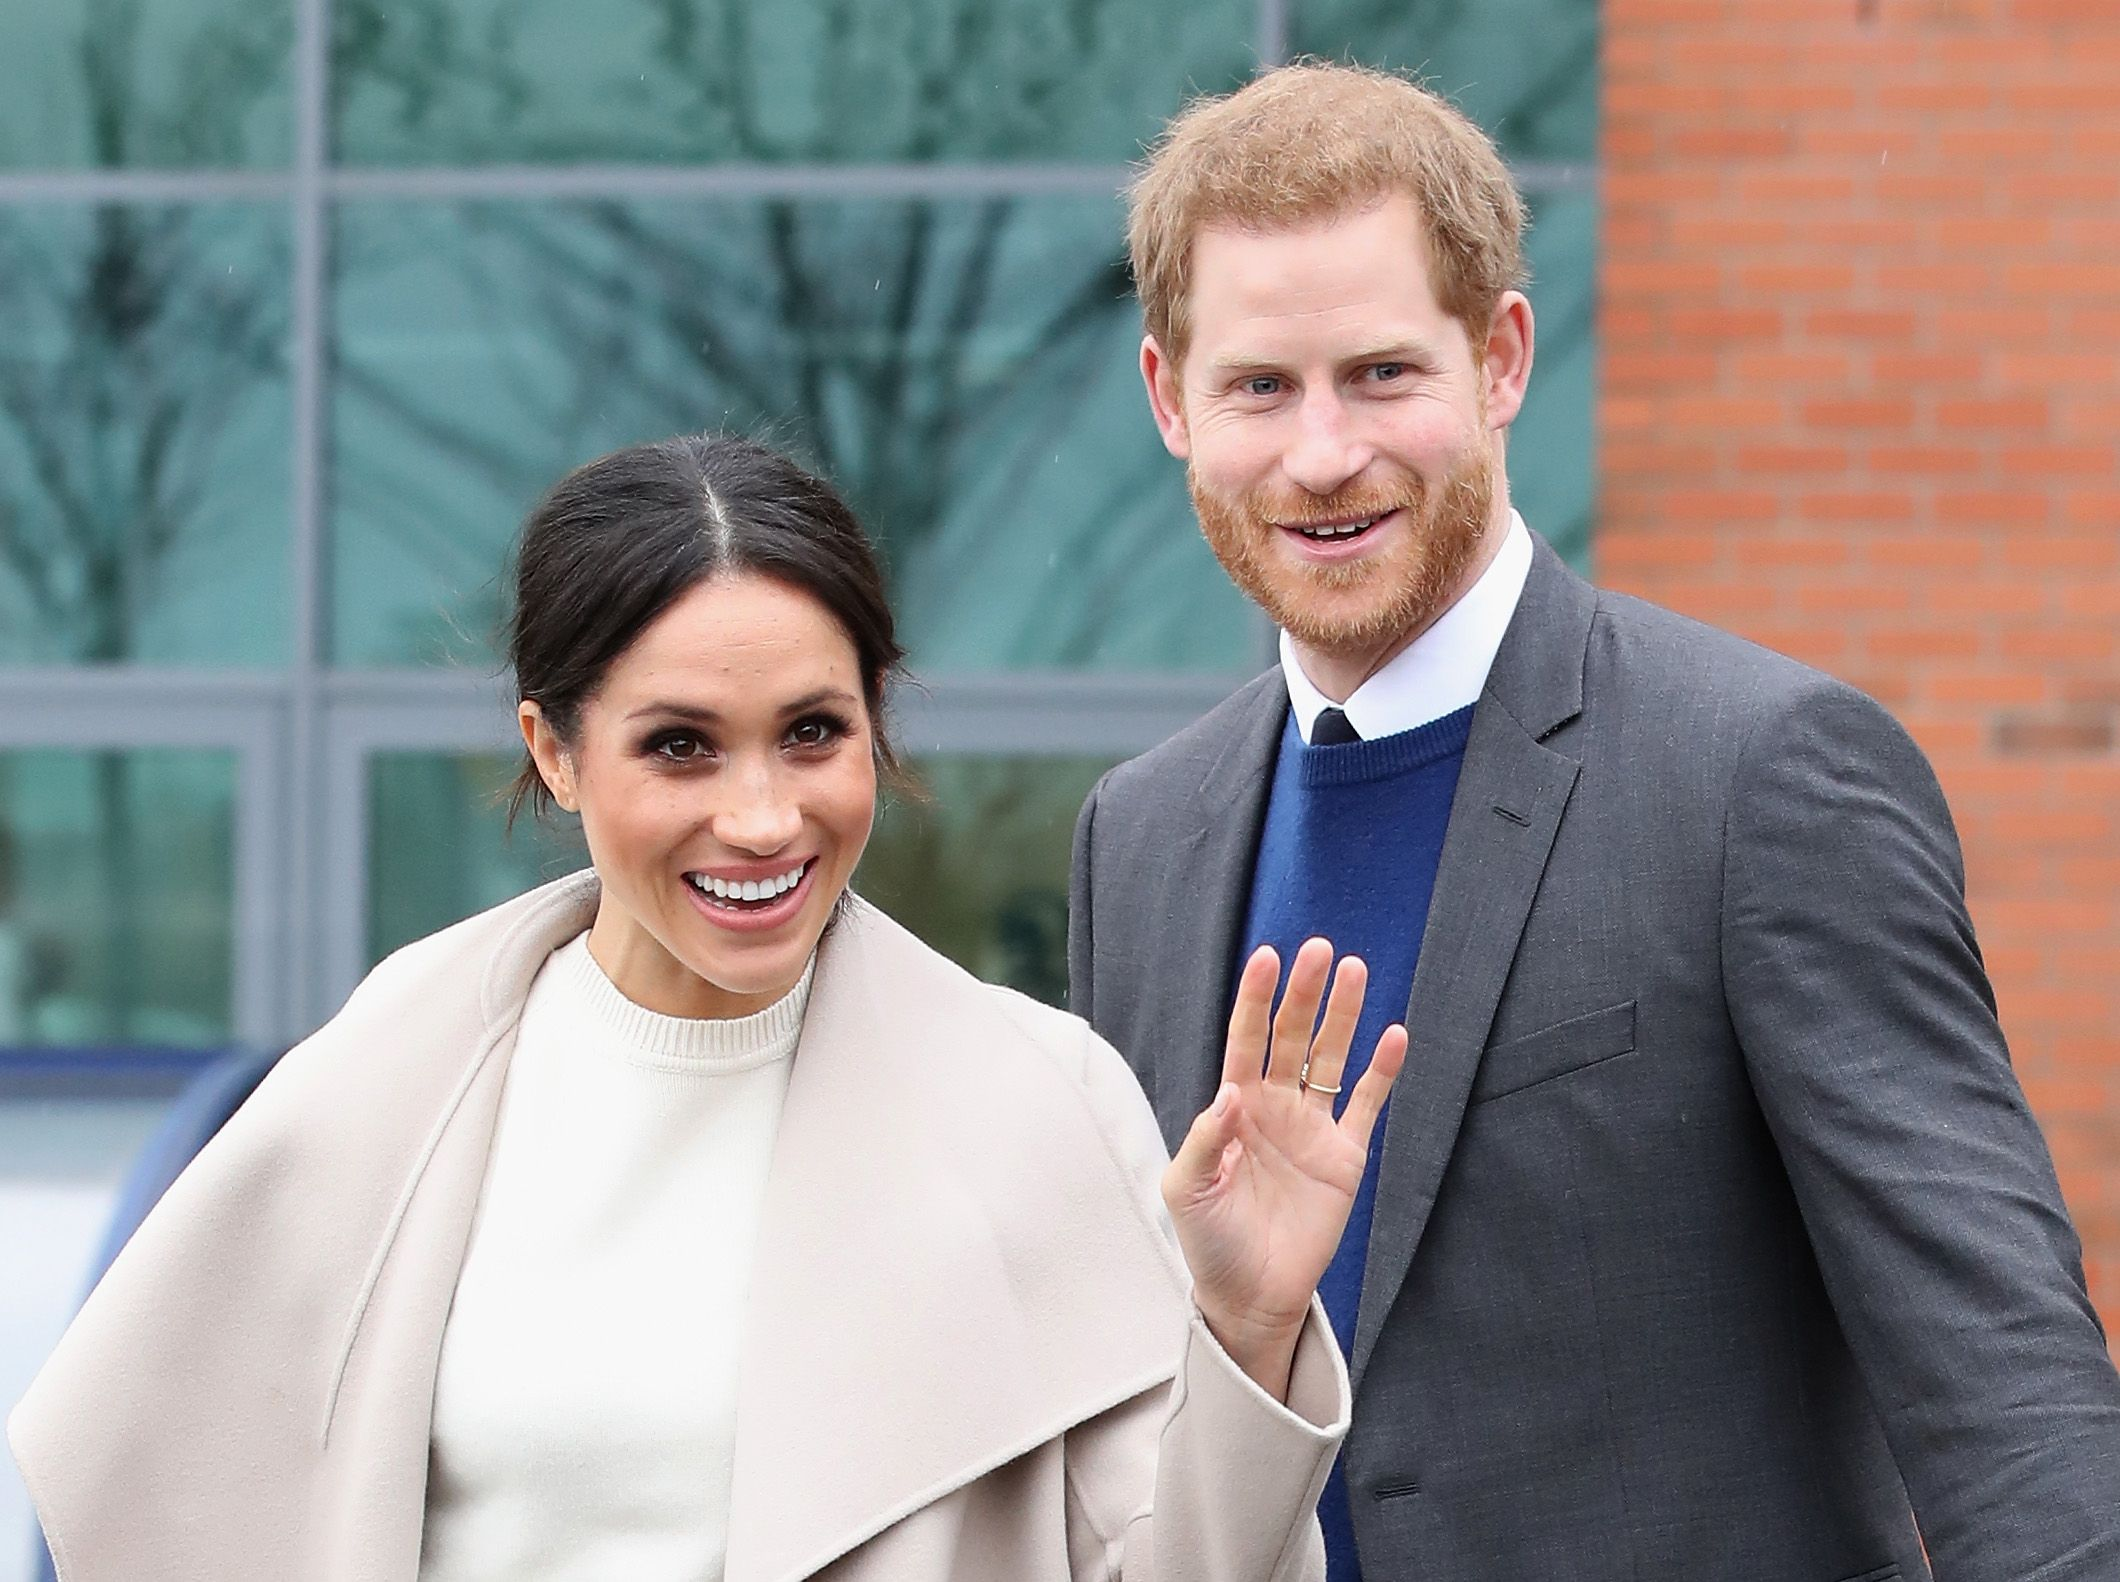 Prince Harry and Meghan Markle depart from Catalyst Inc, Northern Ireland's next generation science park on March 23, 2018 | Photo: Getty Images